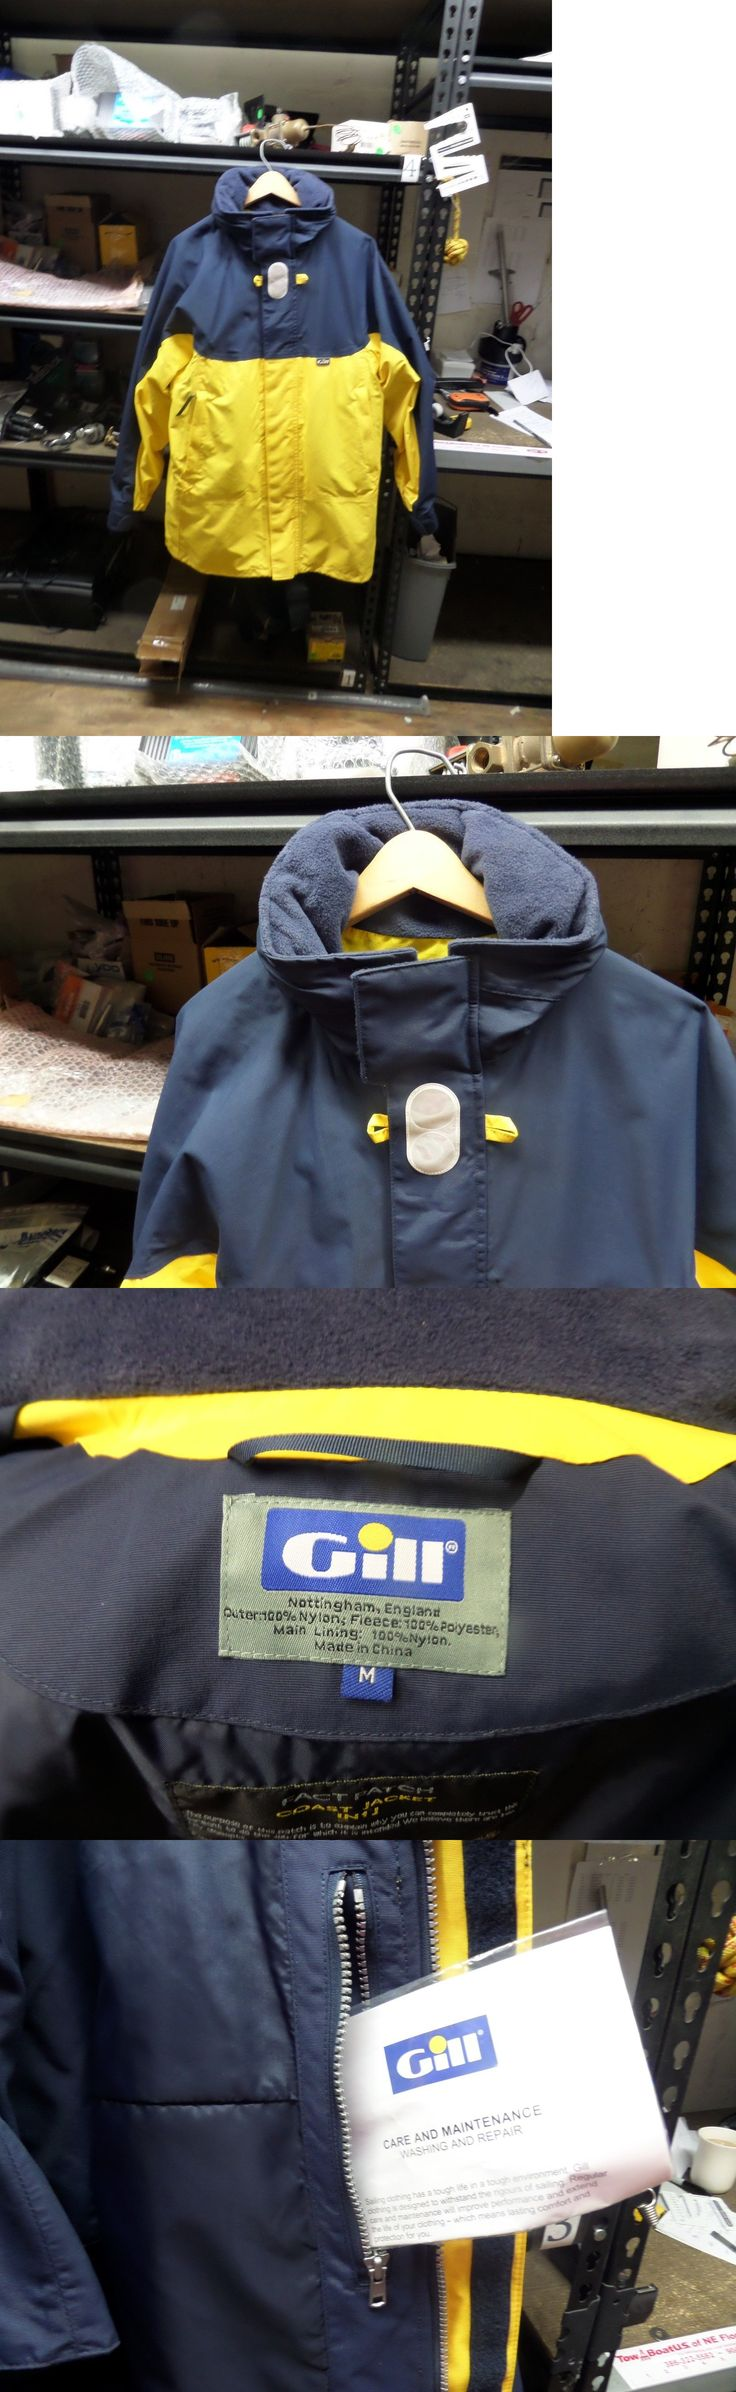 Jacket and Pants Sets 179981: Gill Women S Foul Weather Gear M Yellow And Navy Blue Jacket With Trousers -> BUY IT NOW ONLY: $175 on eBay!